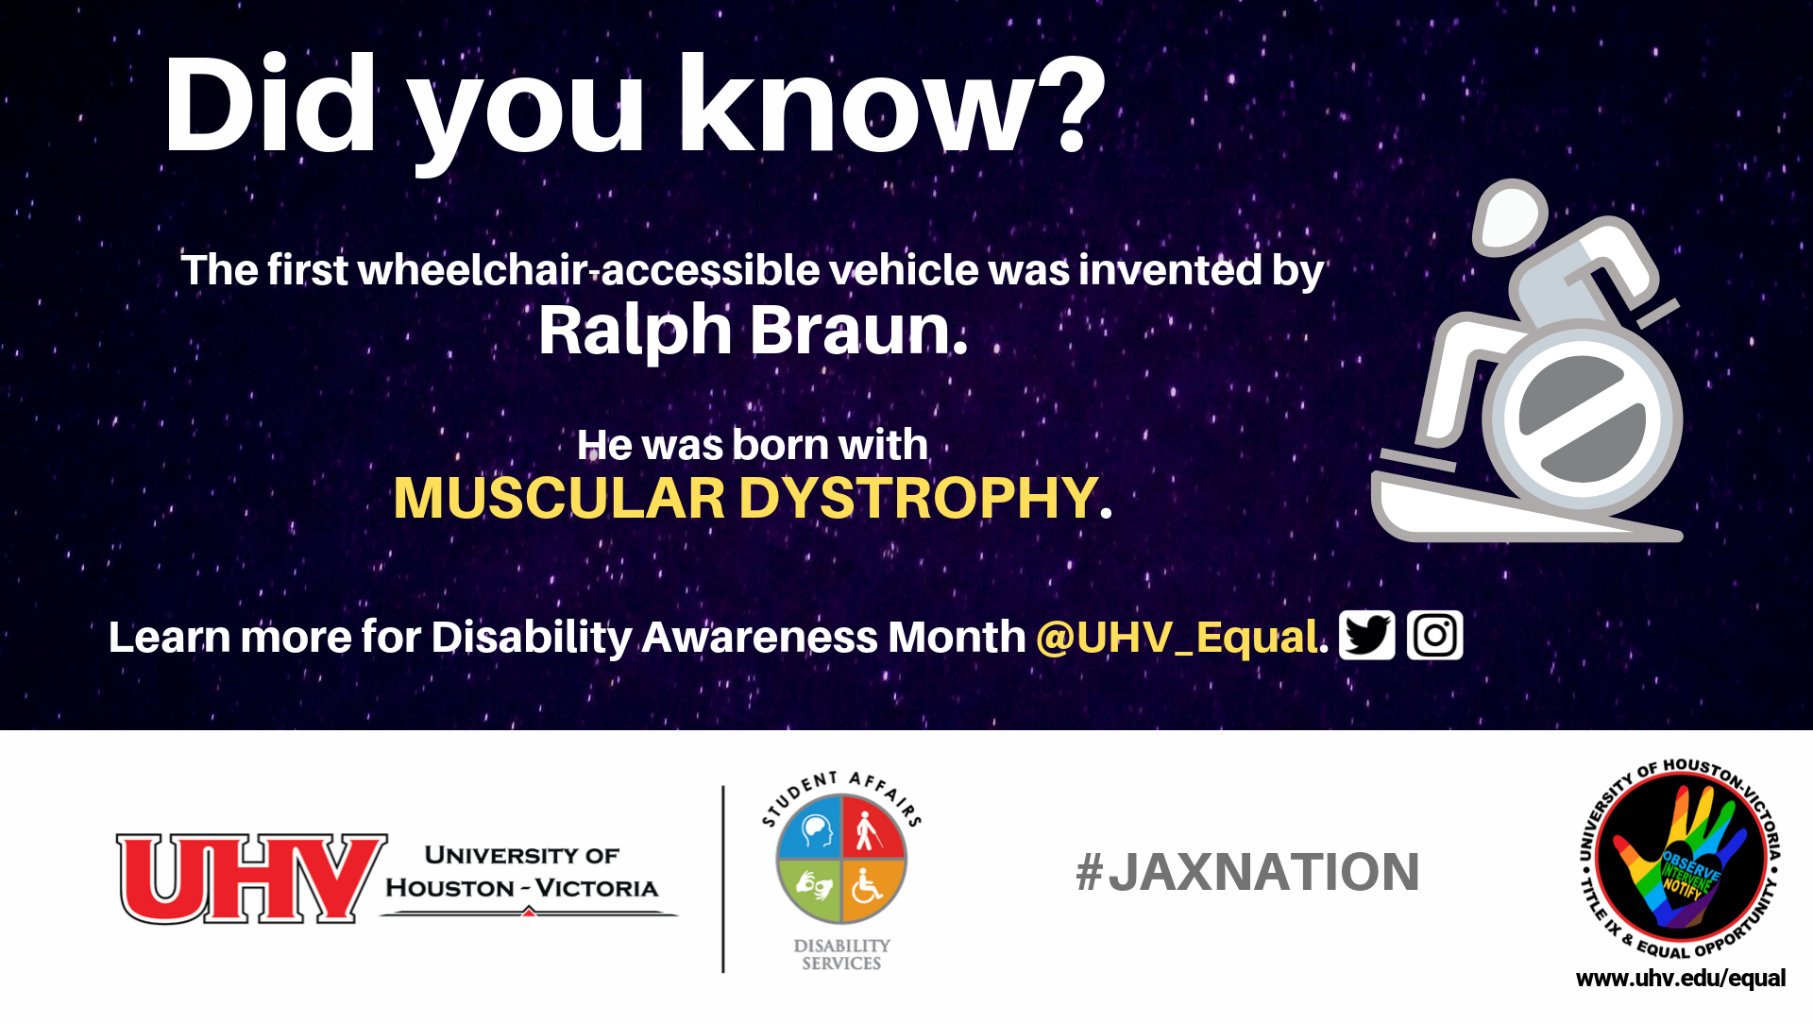 Did you know? The first wheelchair-accessible vehicle was invented by Ralph Braun. He was born with muscular dystrophy. Mobility wheelchair ramp use image. UHV Disability Services Logo. Learn more for Disability Awareness Month @UHV_Equal.#jaxnation. University of Houston-Victoria Title IX and Equal Opportunity Logo (rainbow hand with heart insert with words Observe, Intervene, Notify).